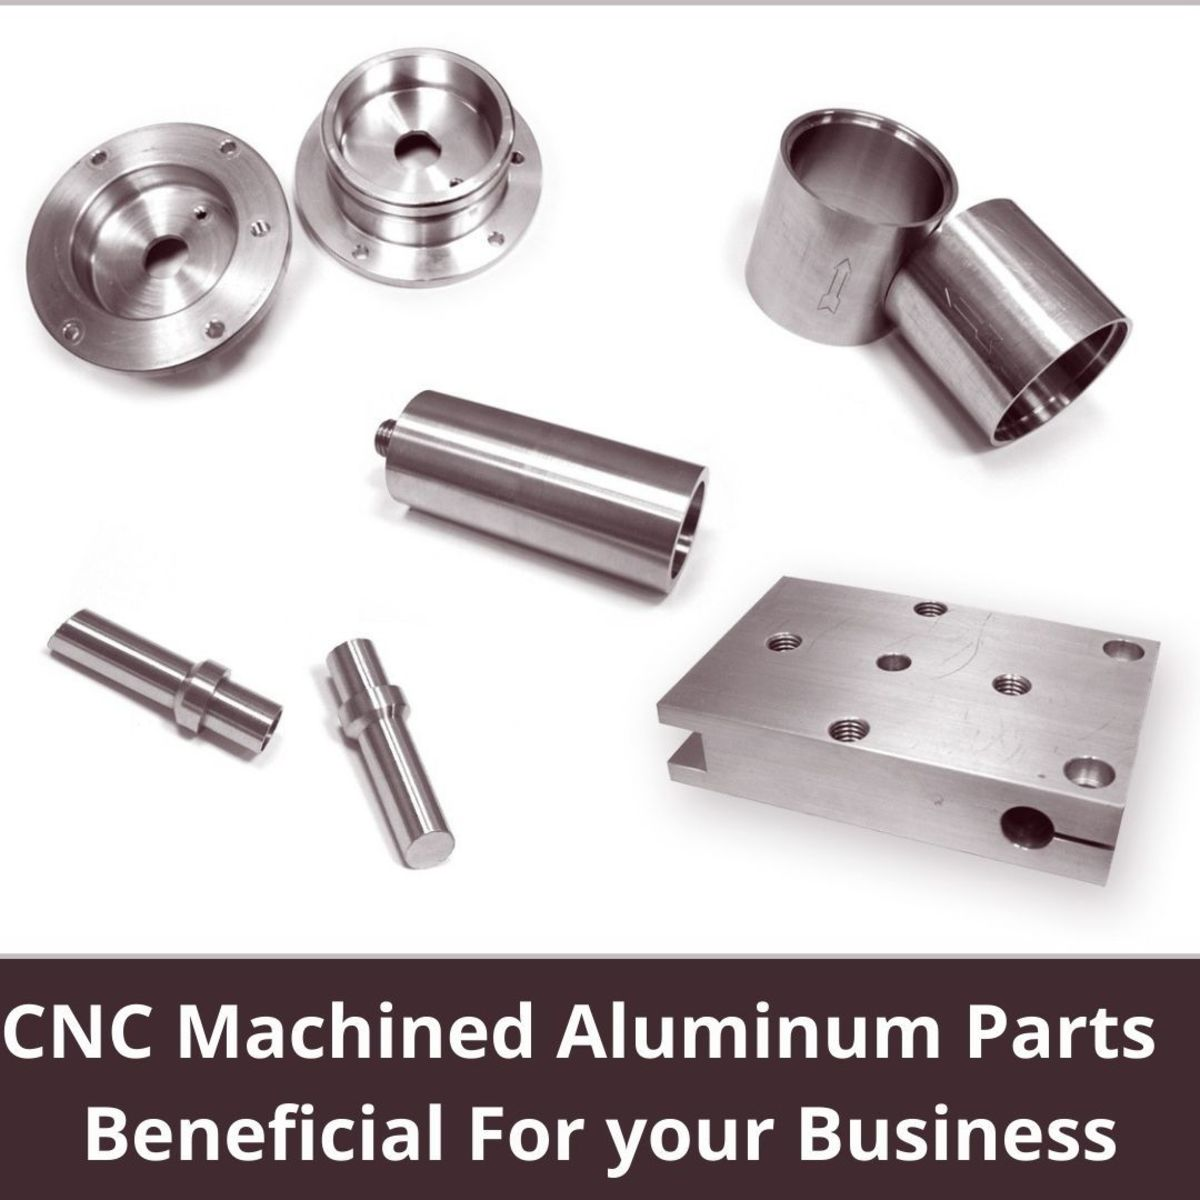 why-are-cnc-machined-aluminum-parts-beneficial-for-your-business